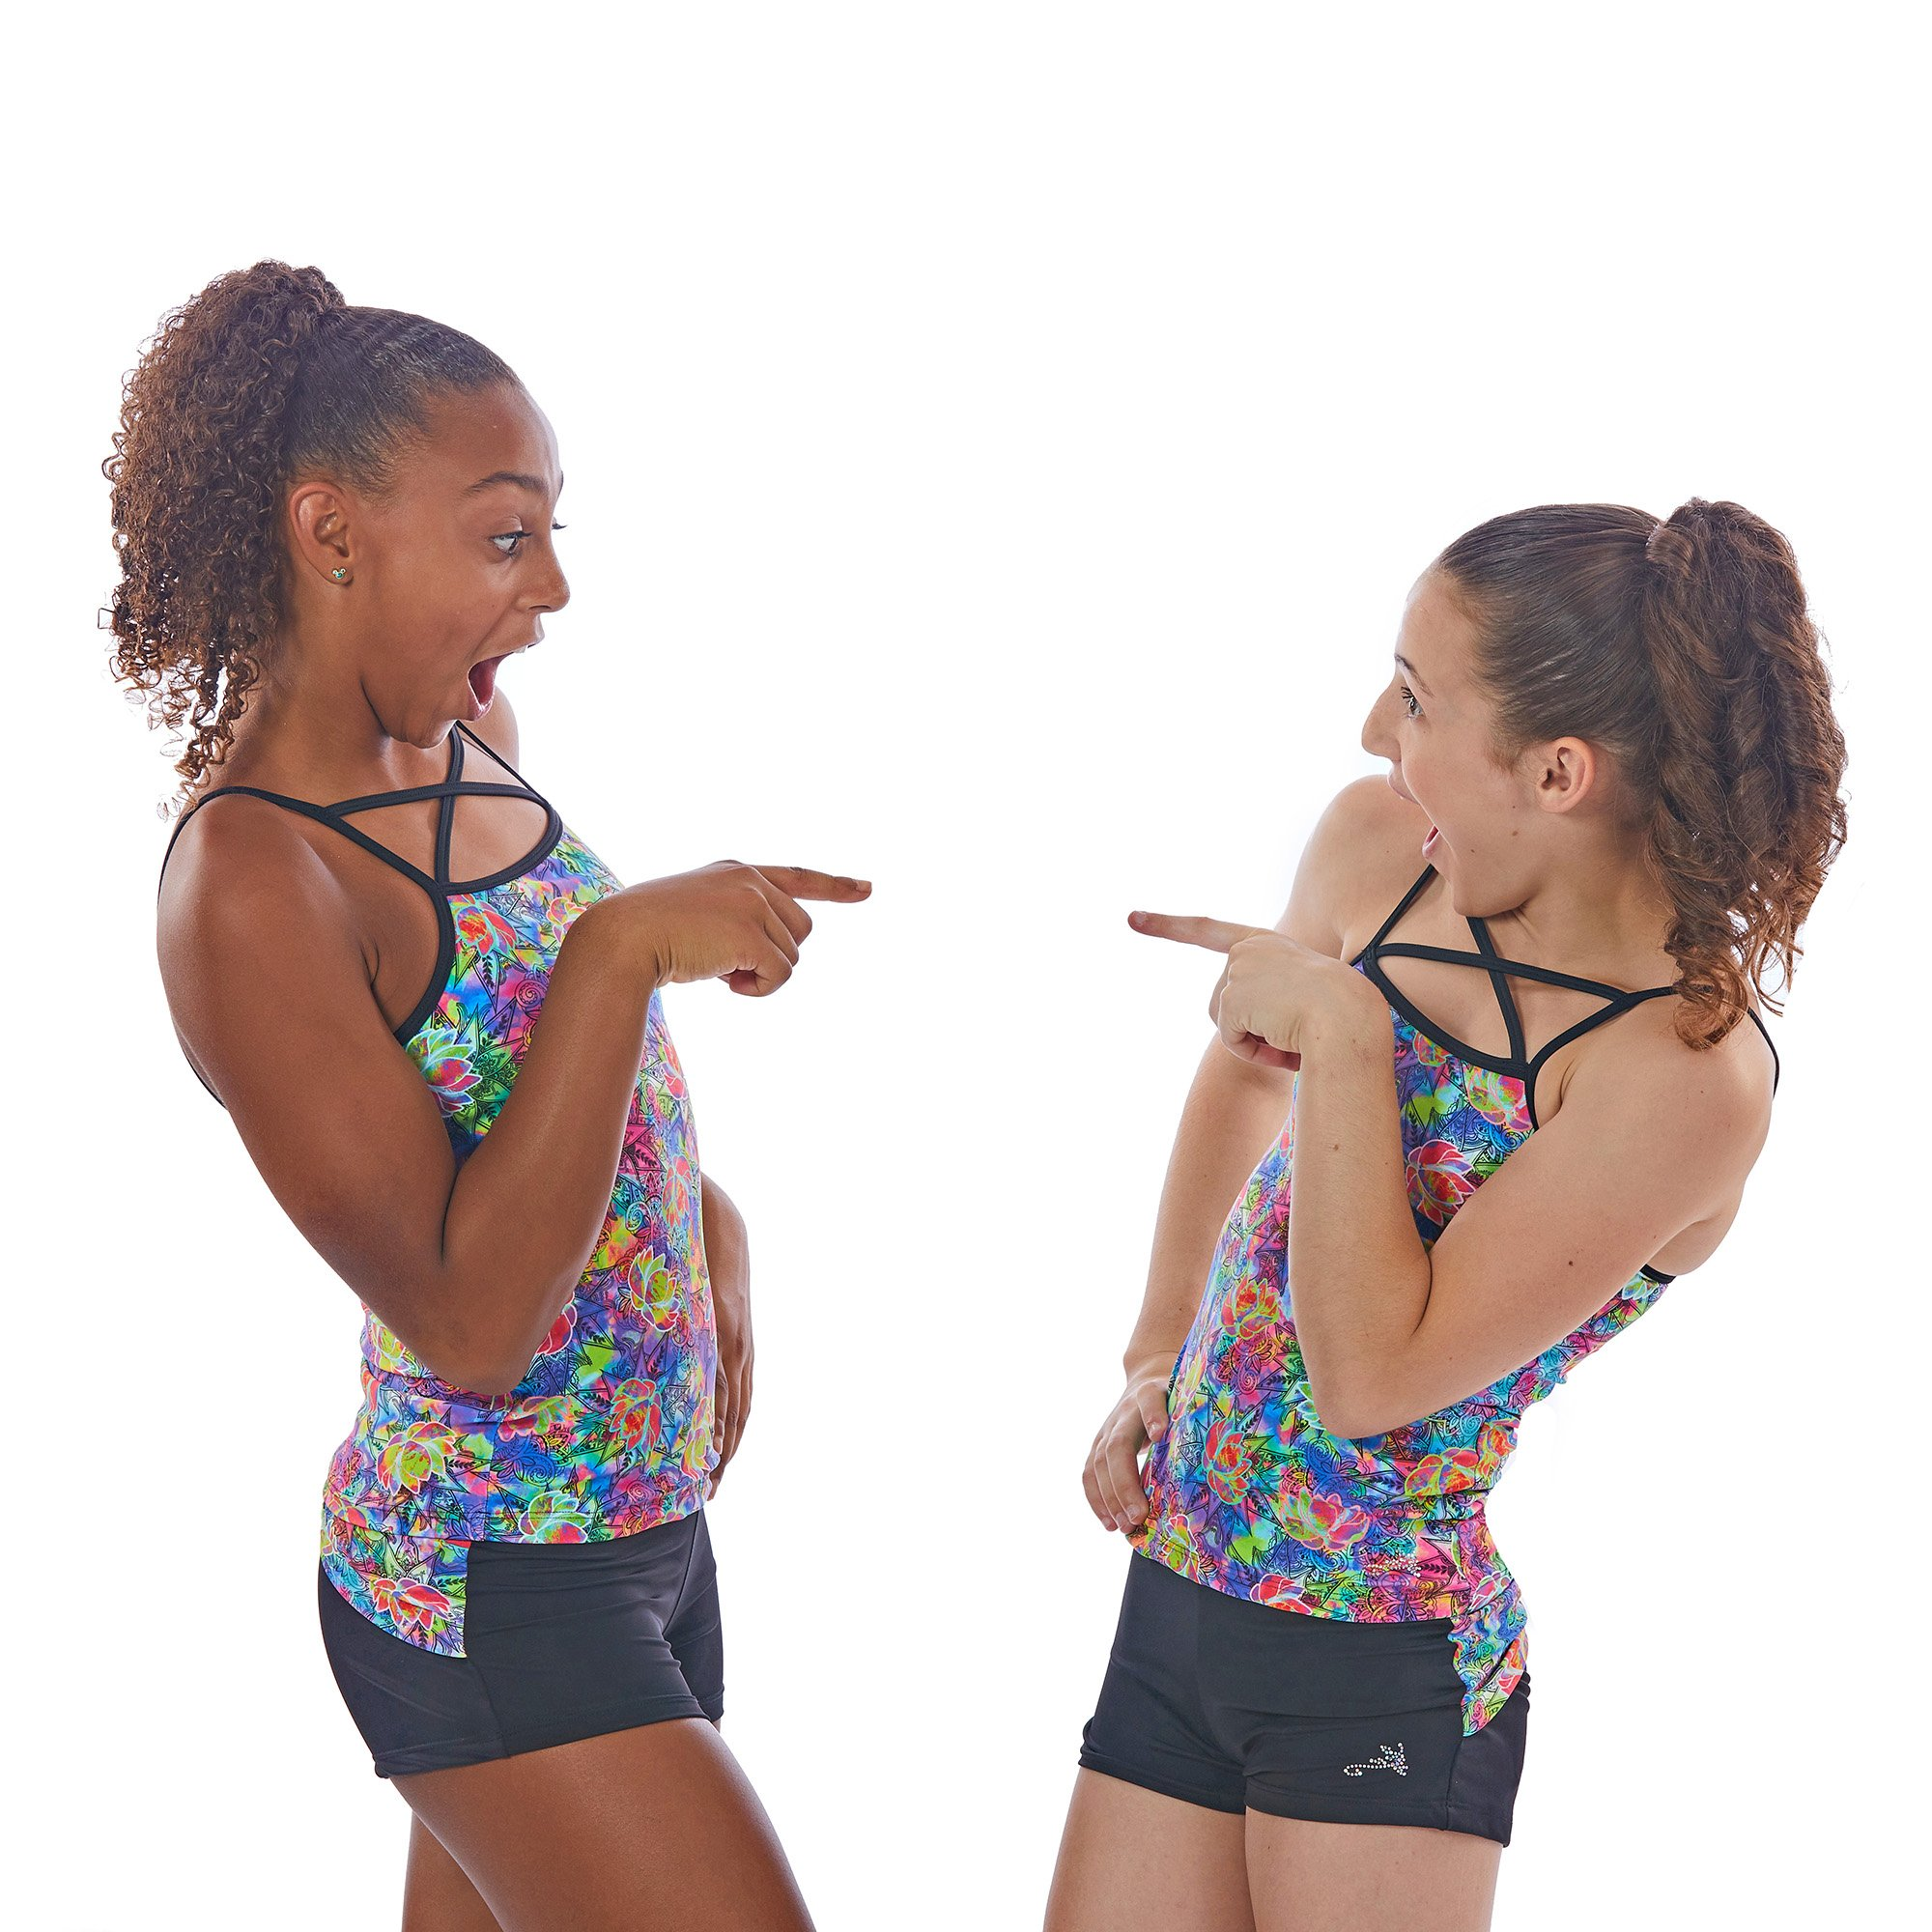 Lizatards Shorts and Bra Top Set in Girls or Adult Sizes for Dance or Gymnastics (Lotus Flower Girls M (8/10)) by Lizatards